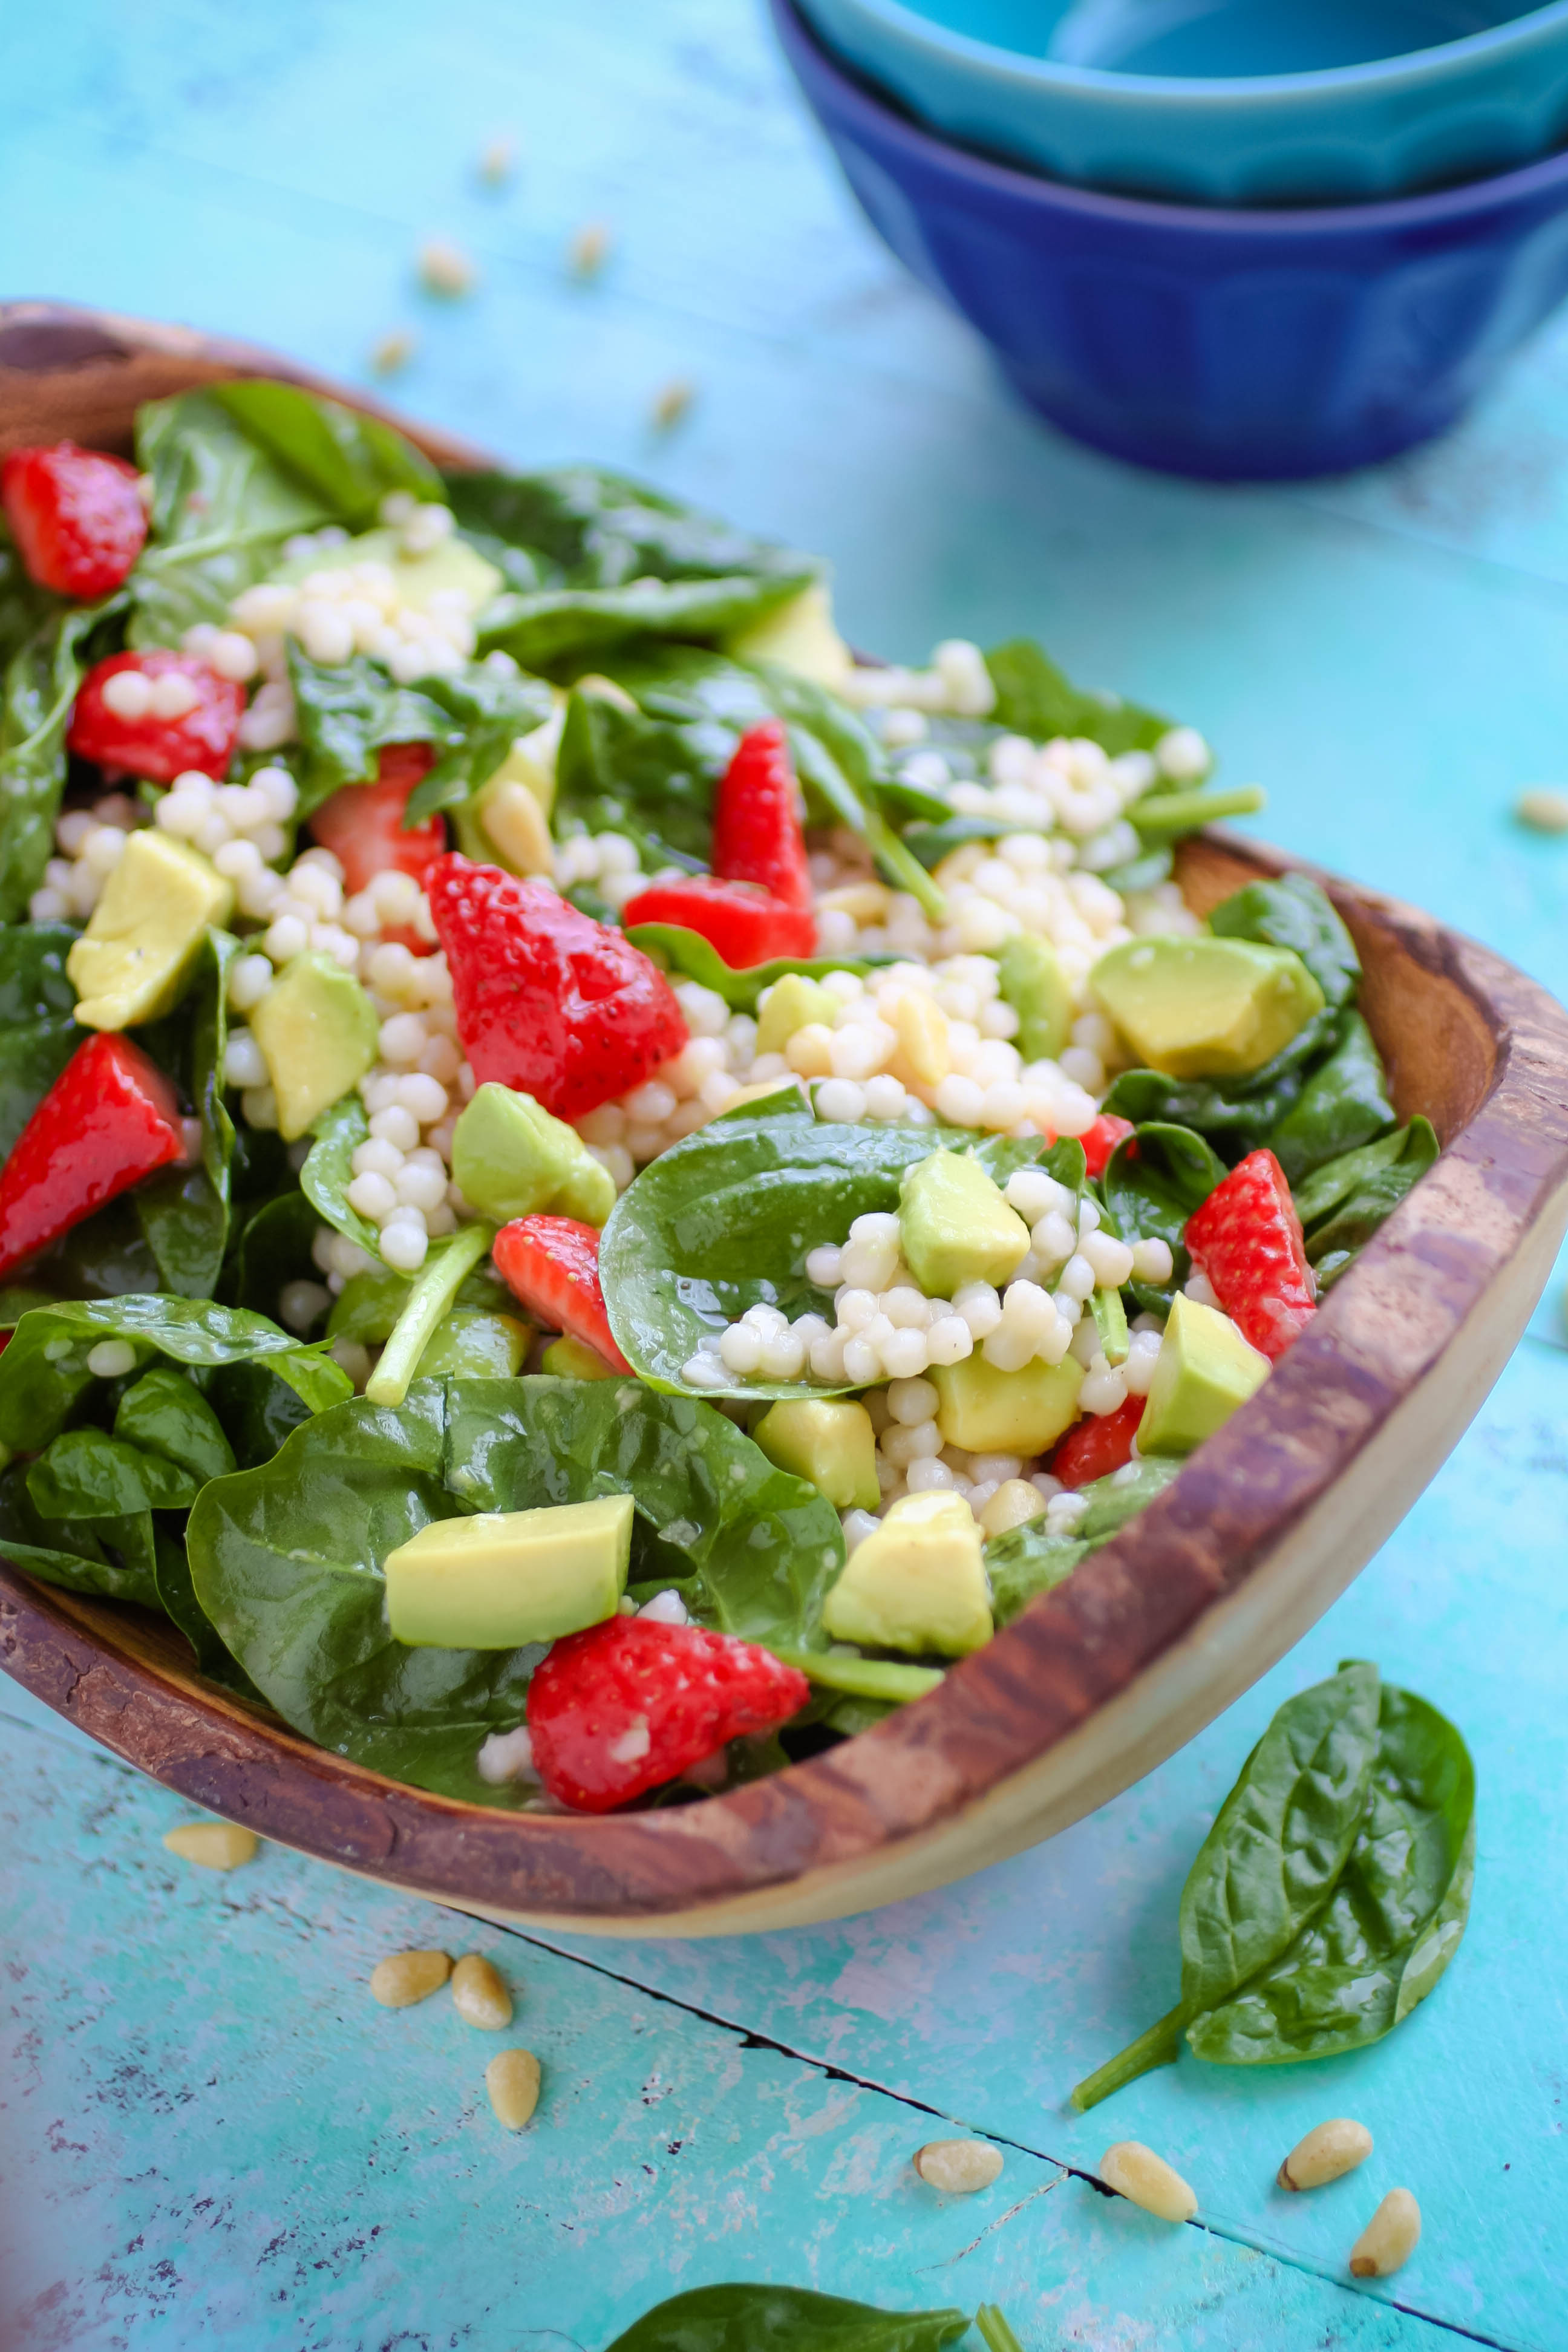 Spinach and Couscous Salad with Strawberries, Avocado & Honey-Lime Dressing is a fabulous salad for the season. Everyone will love Spinach and Couscous Salad with Strawberries, Avocado & Honey-Lime Dressing.